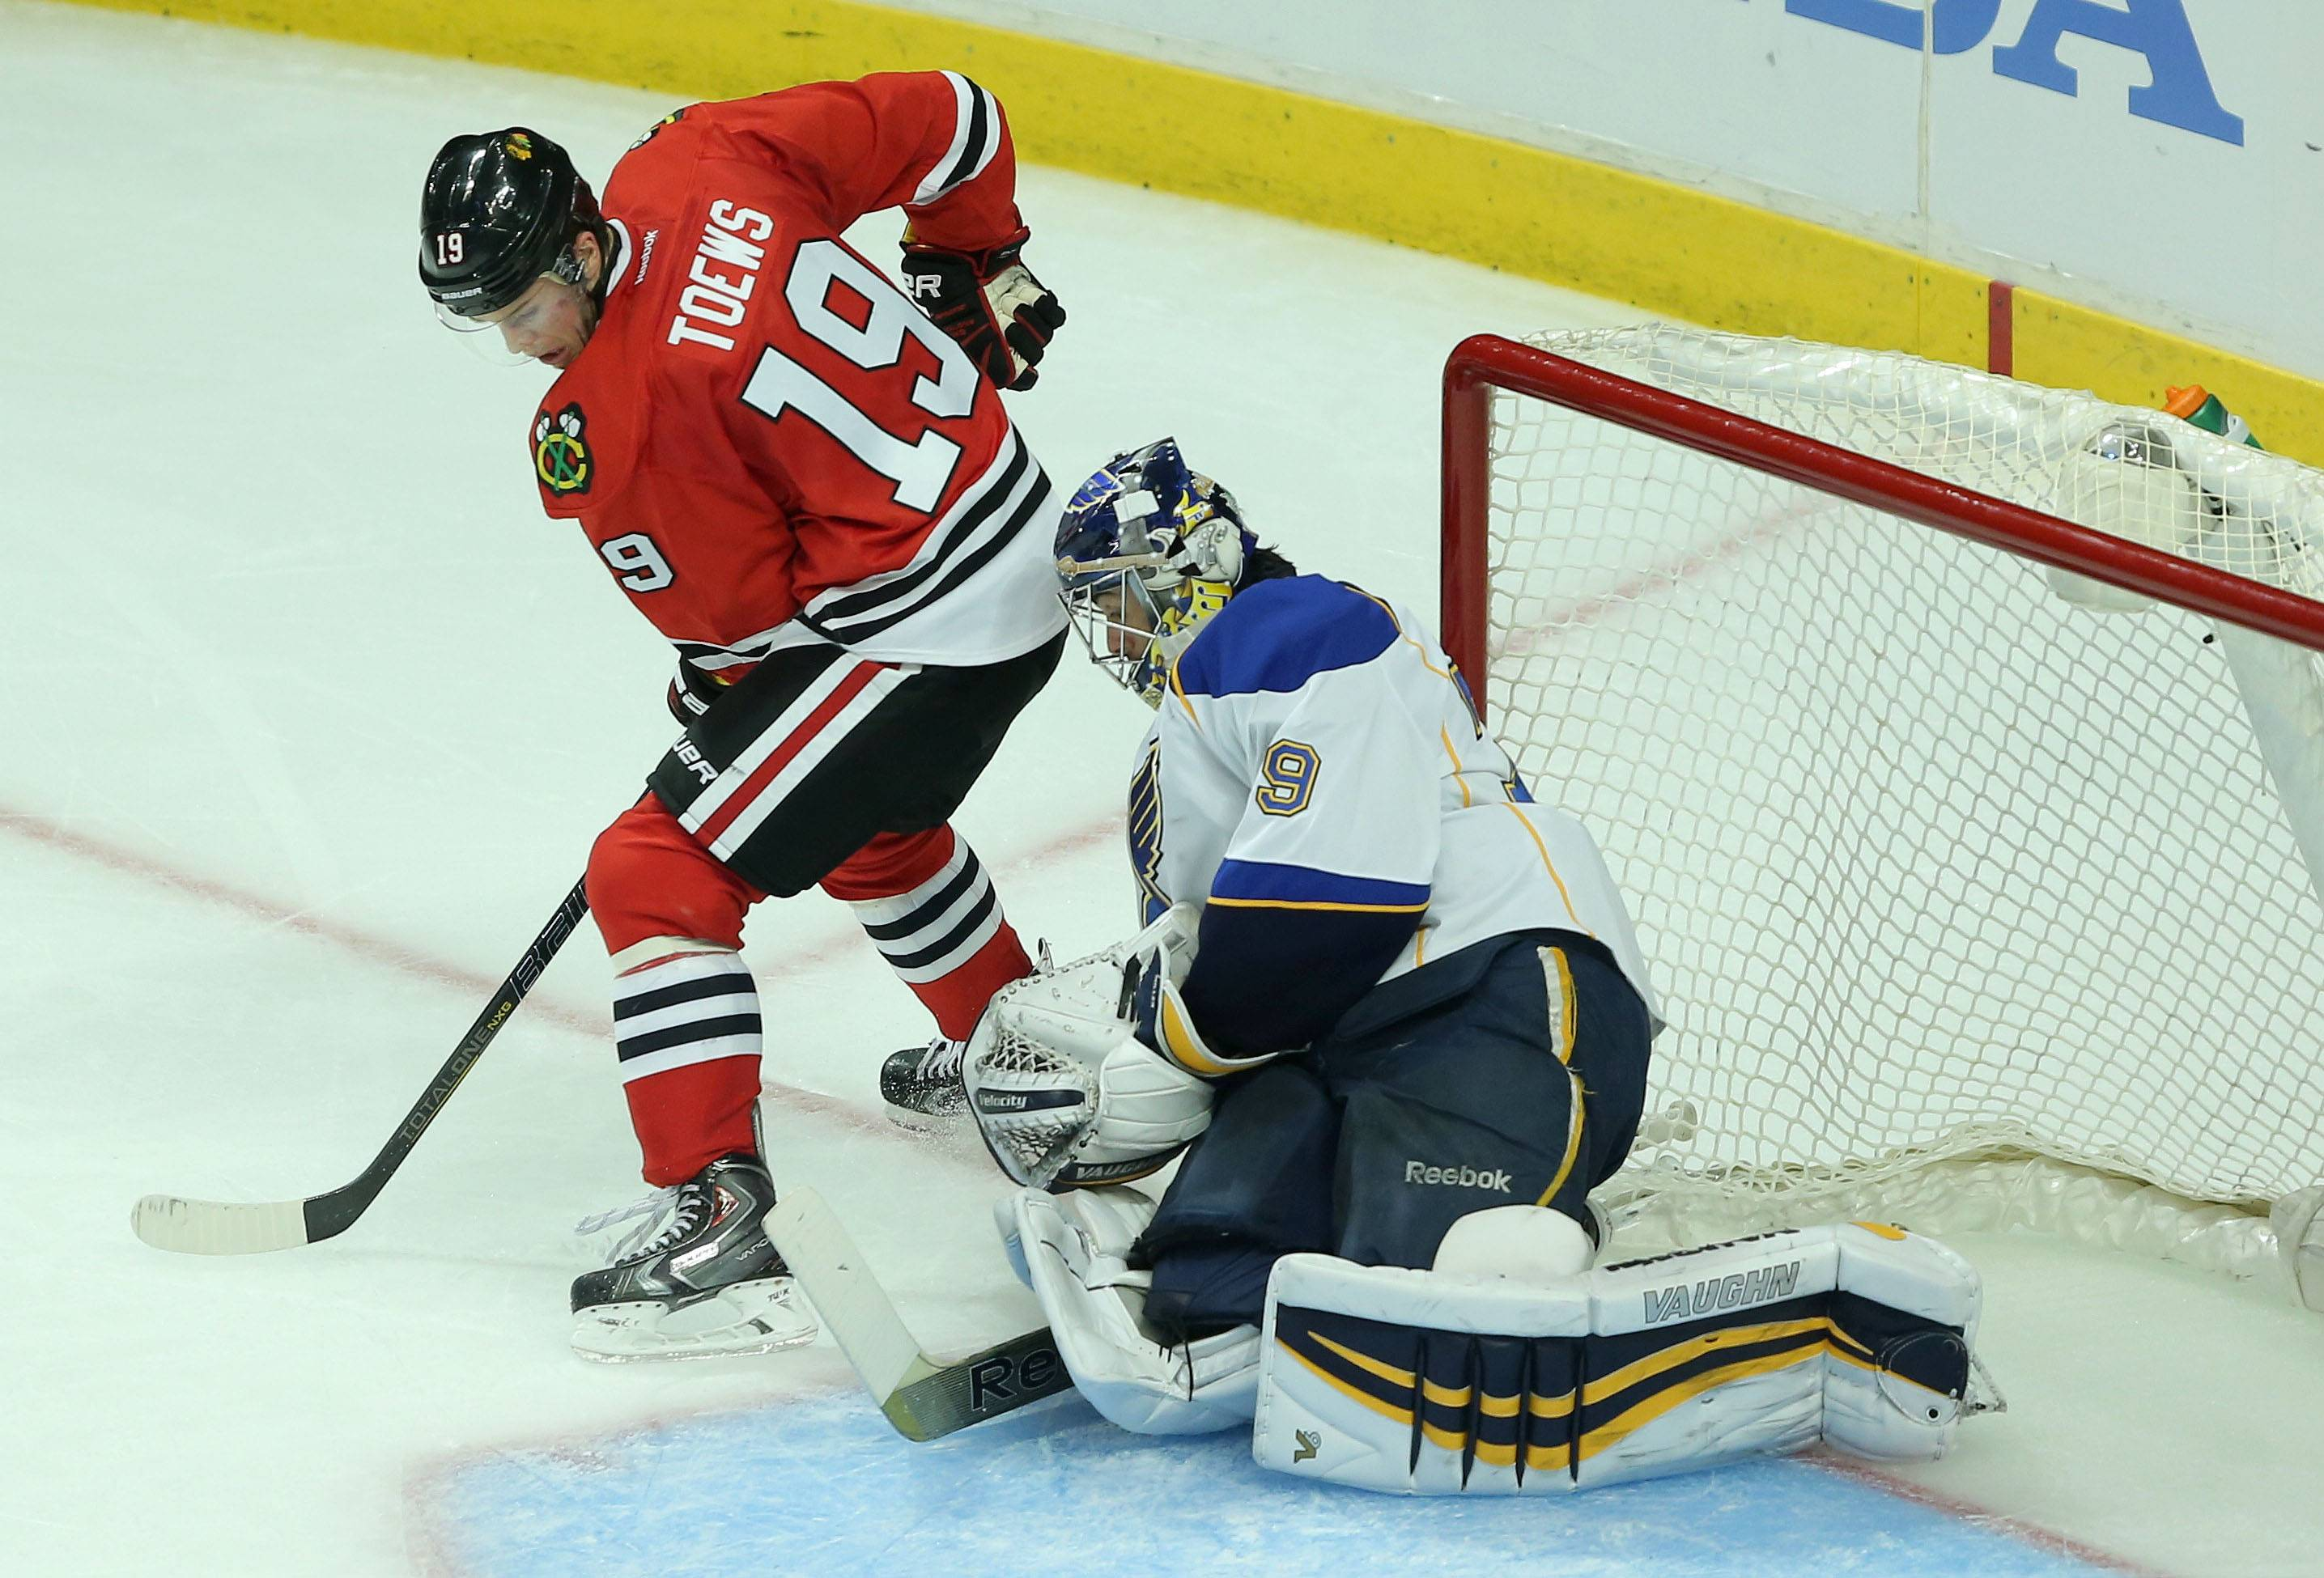 Chicago Blackhawks center Jonathan Toews pressures St. Louis Blues goalie Ryan Miller.